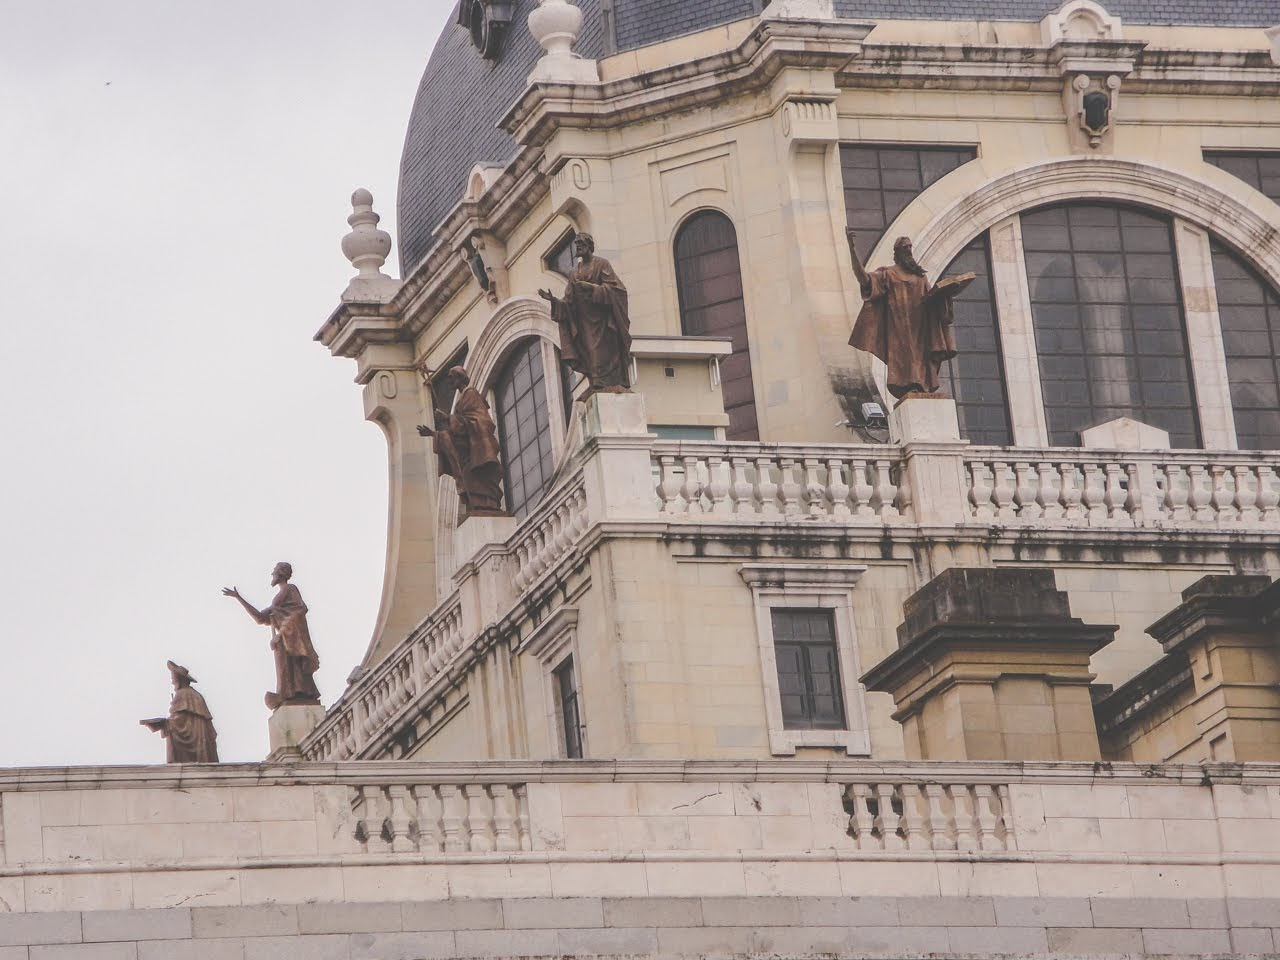 A set of statues at the top of a building